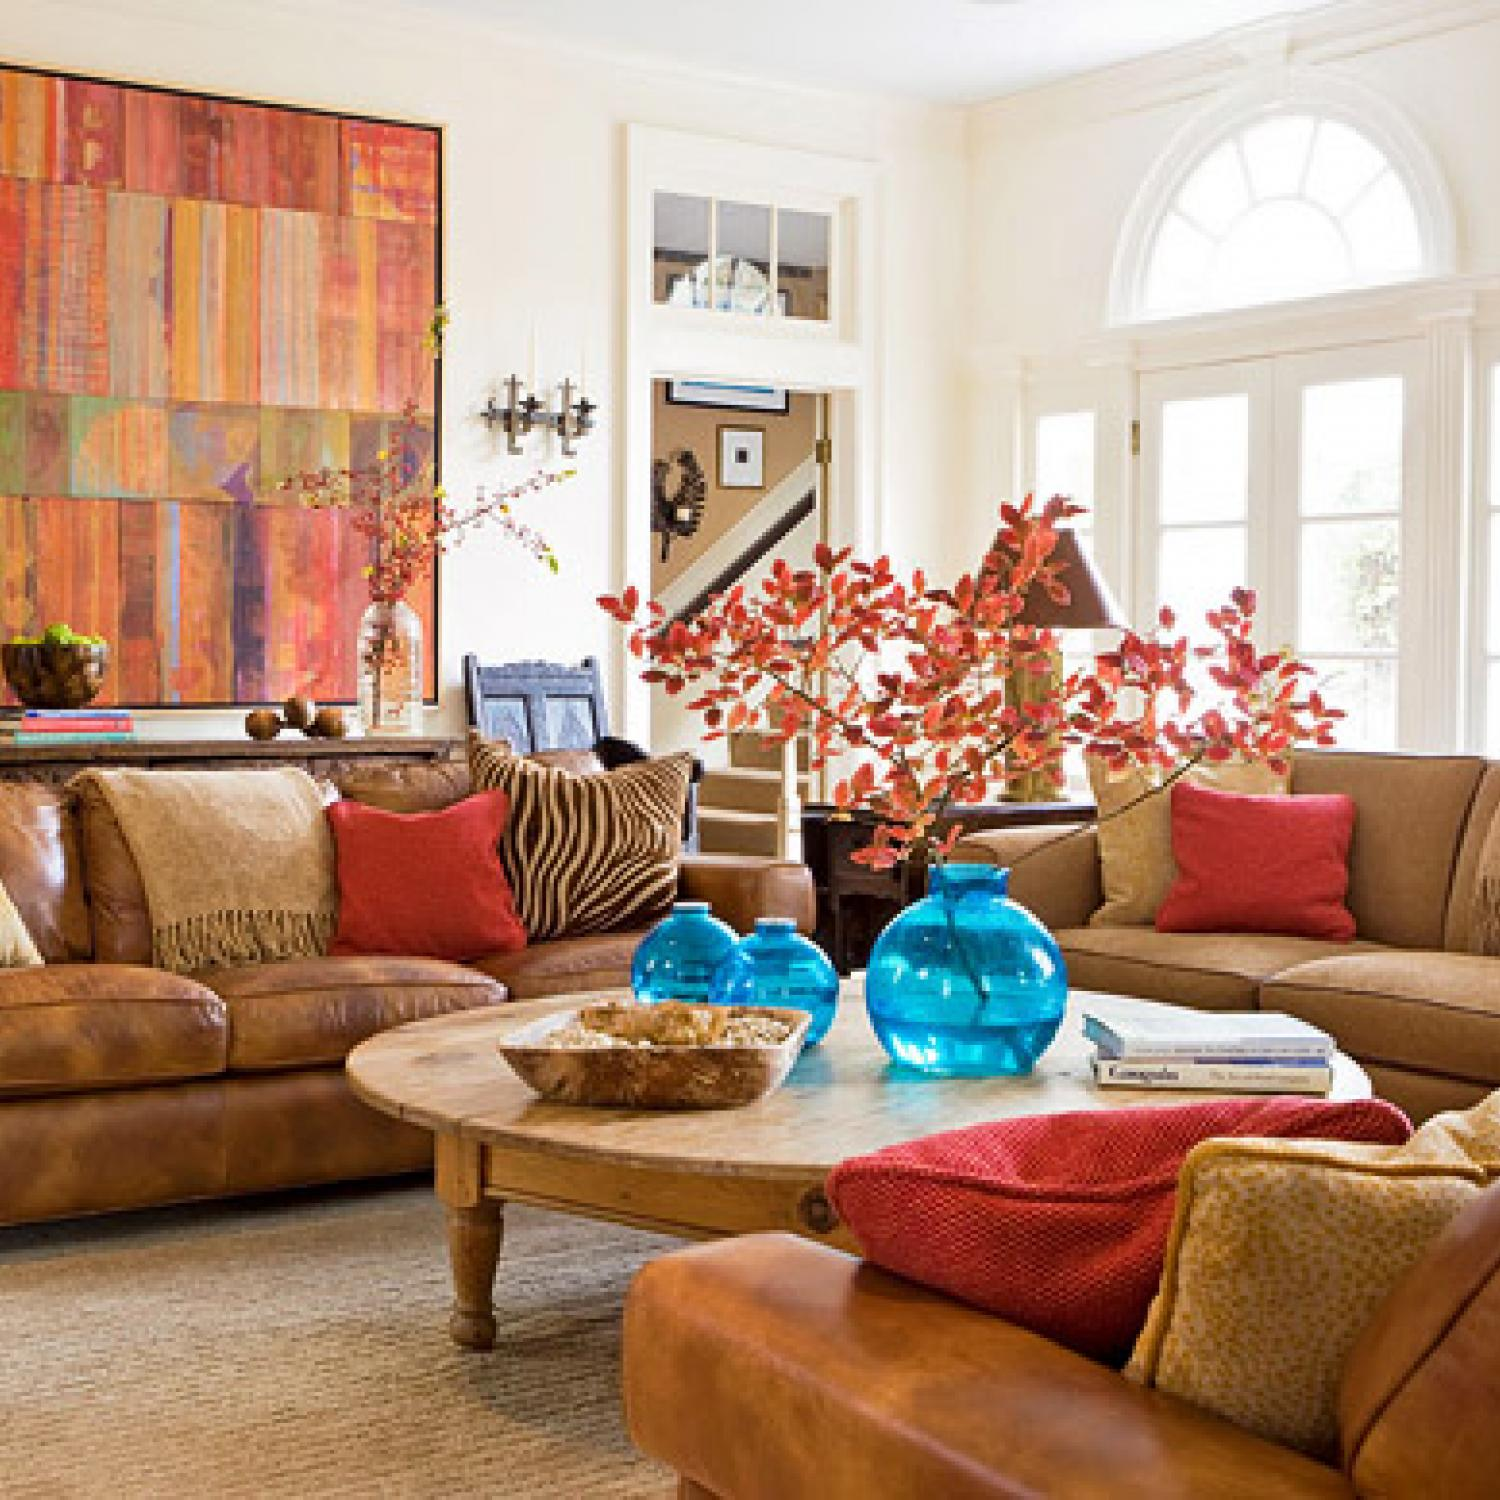 Gorgeous updated classic home traditional home - Home decorating ideas living room walls ...